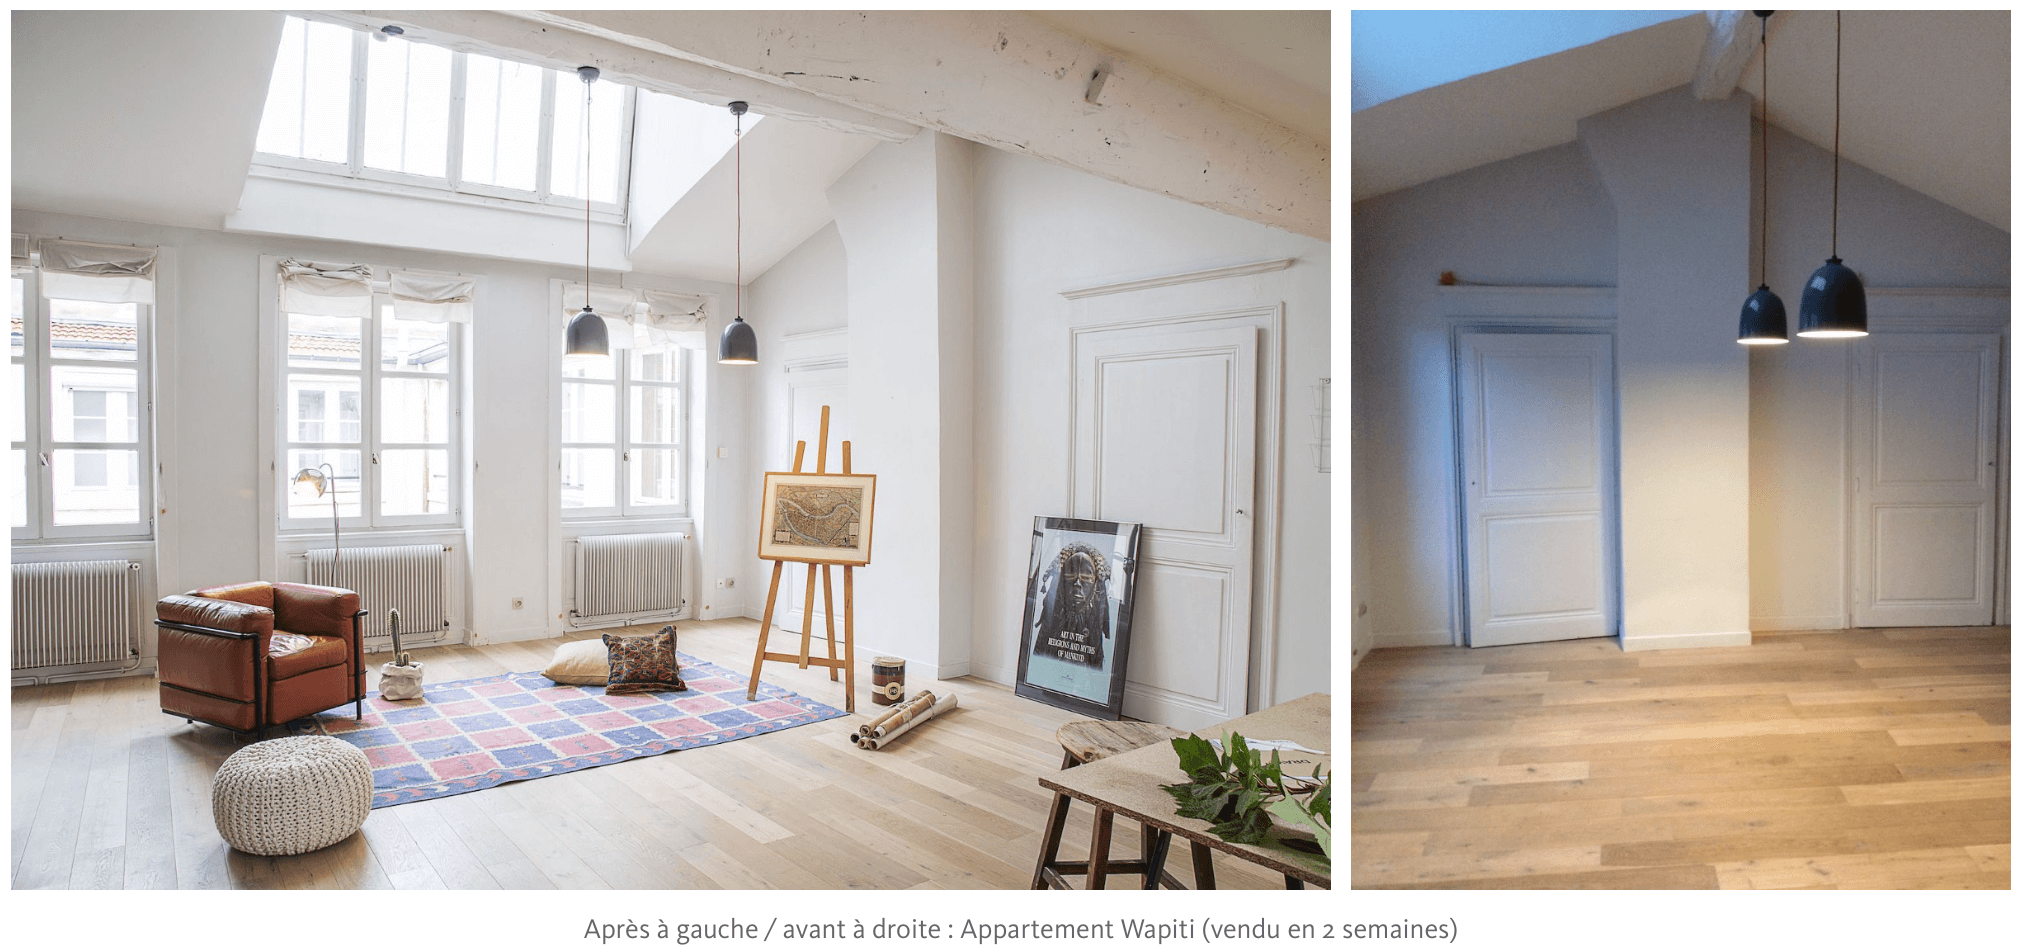 bumper-blog-news-immobilier-lyon-appartement-vente-achat-investir-homestaging-design-decoration-lifestyle-art-19.png